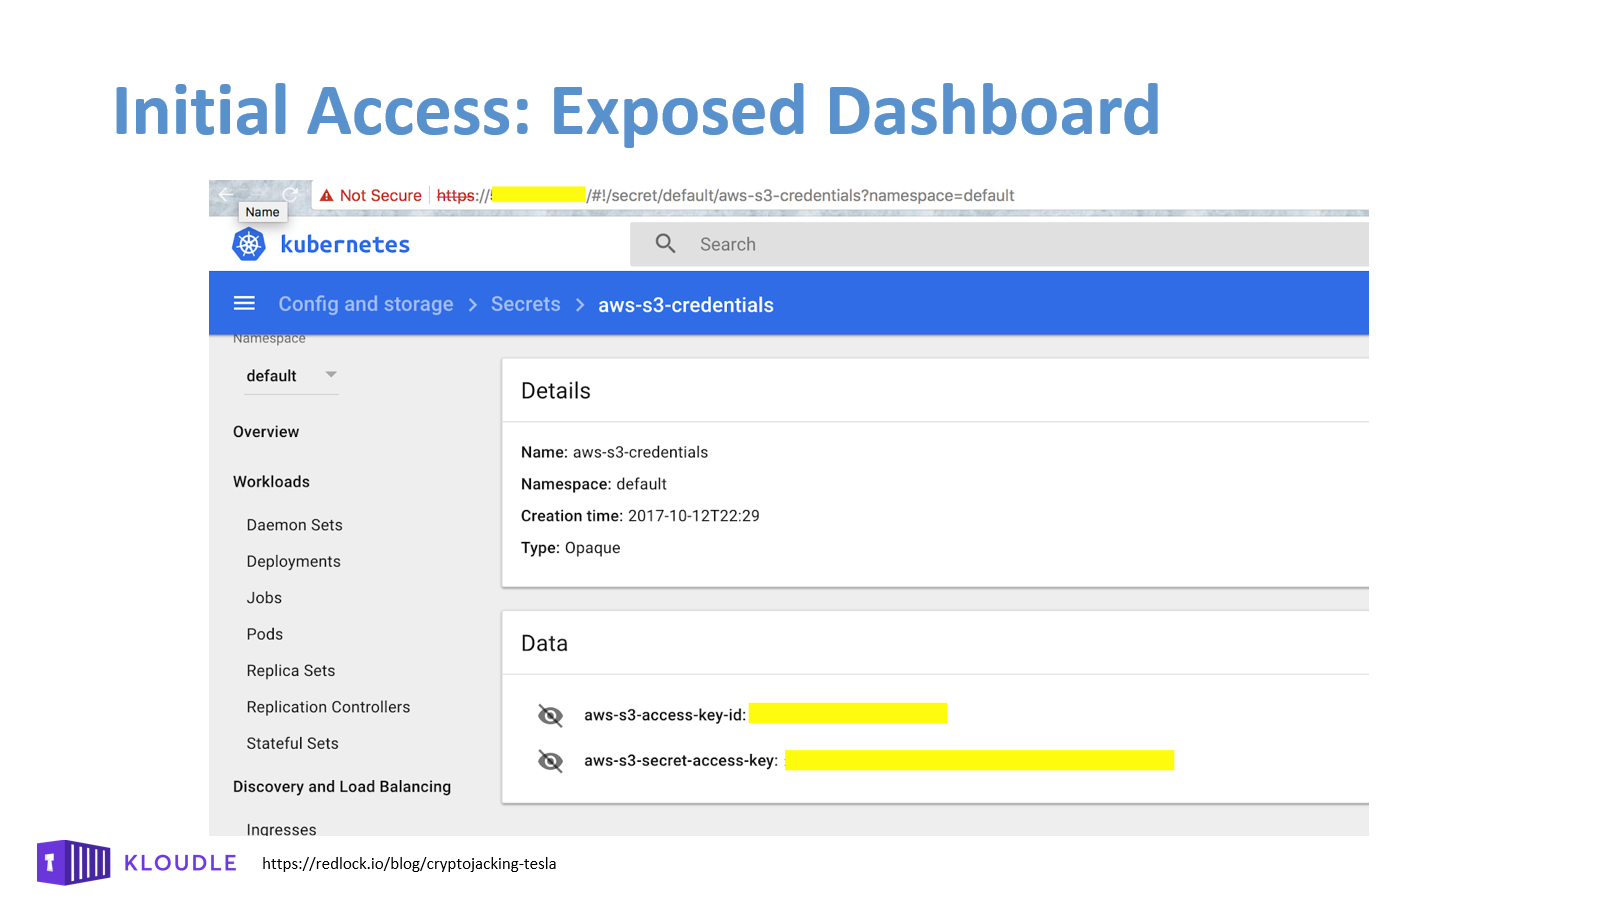 Initial Access - Exposed Dashboard